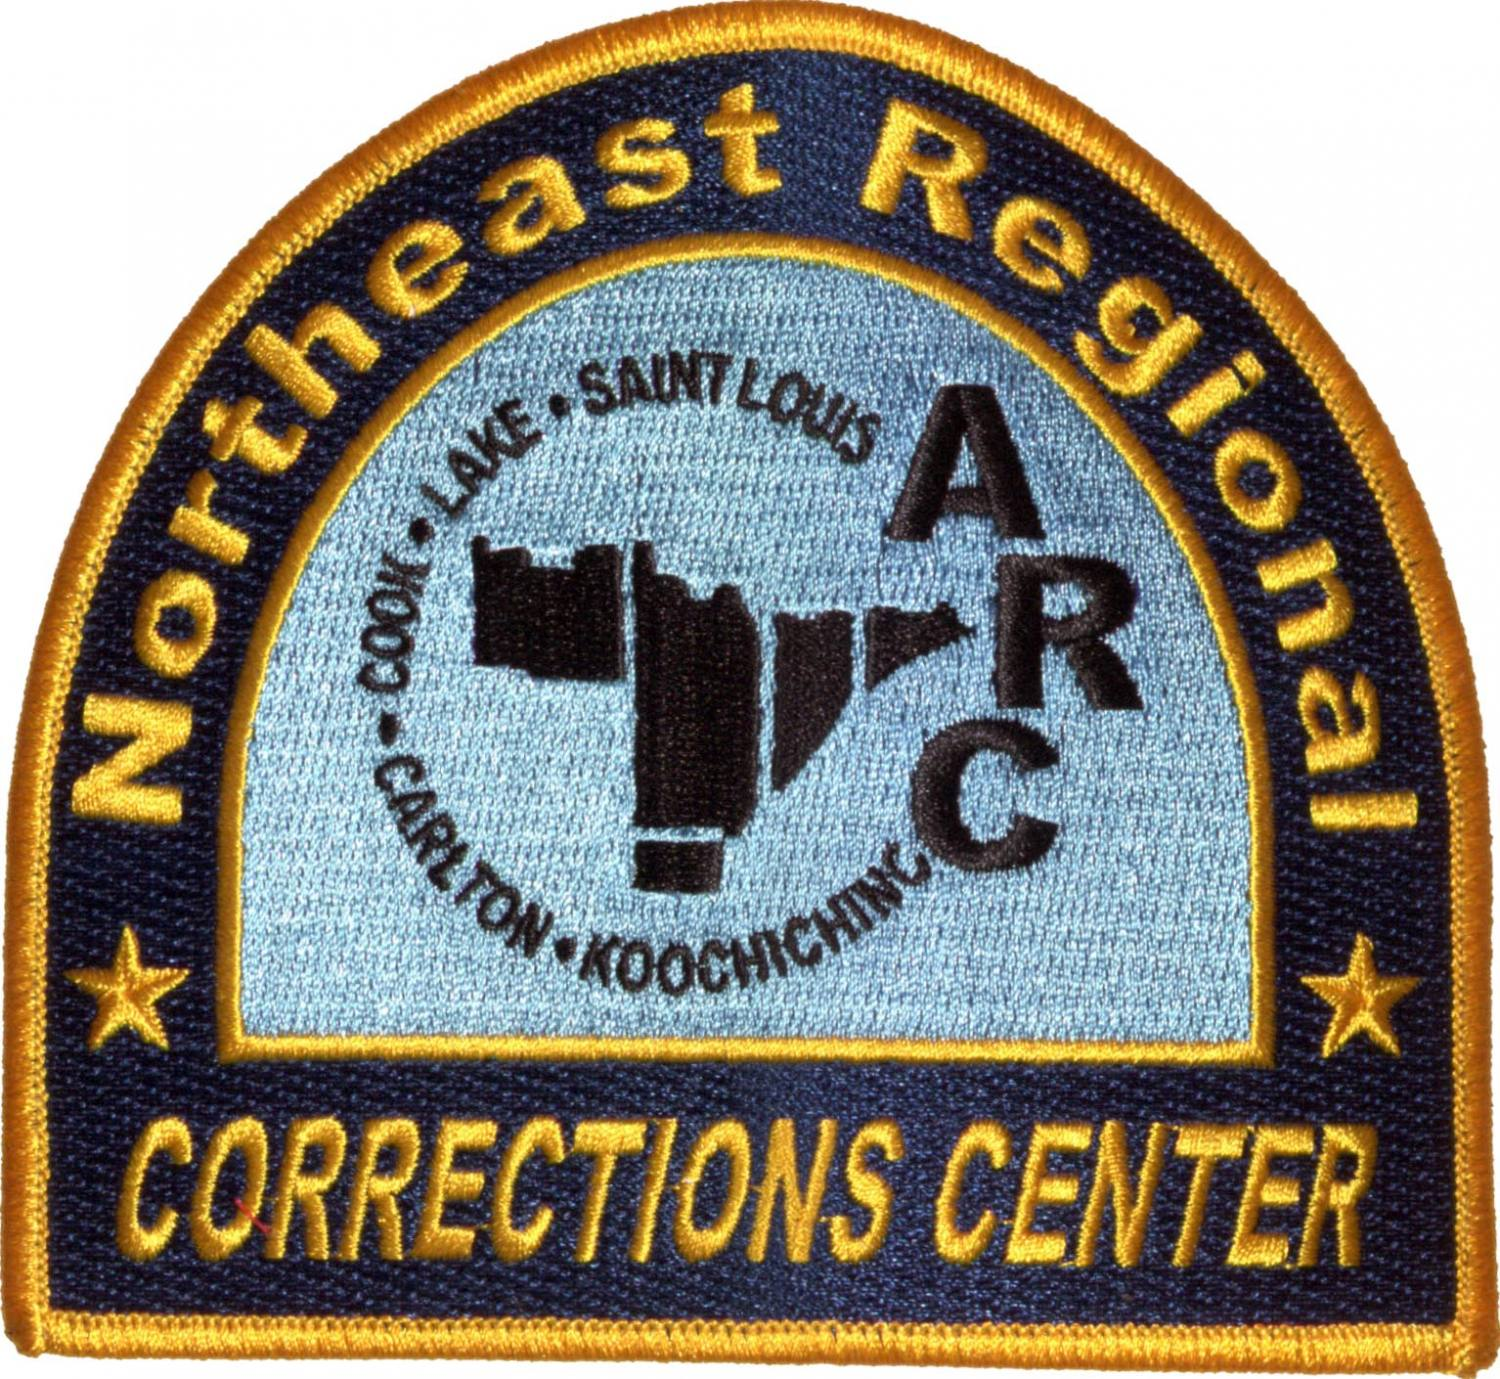 Correctoinal Unit patches